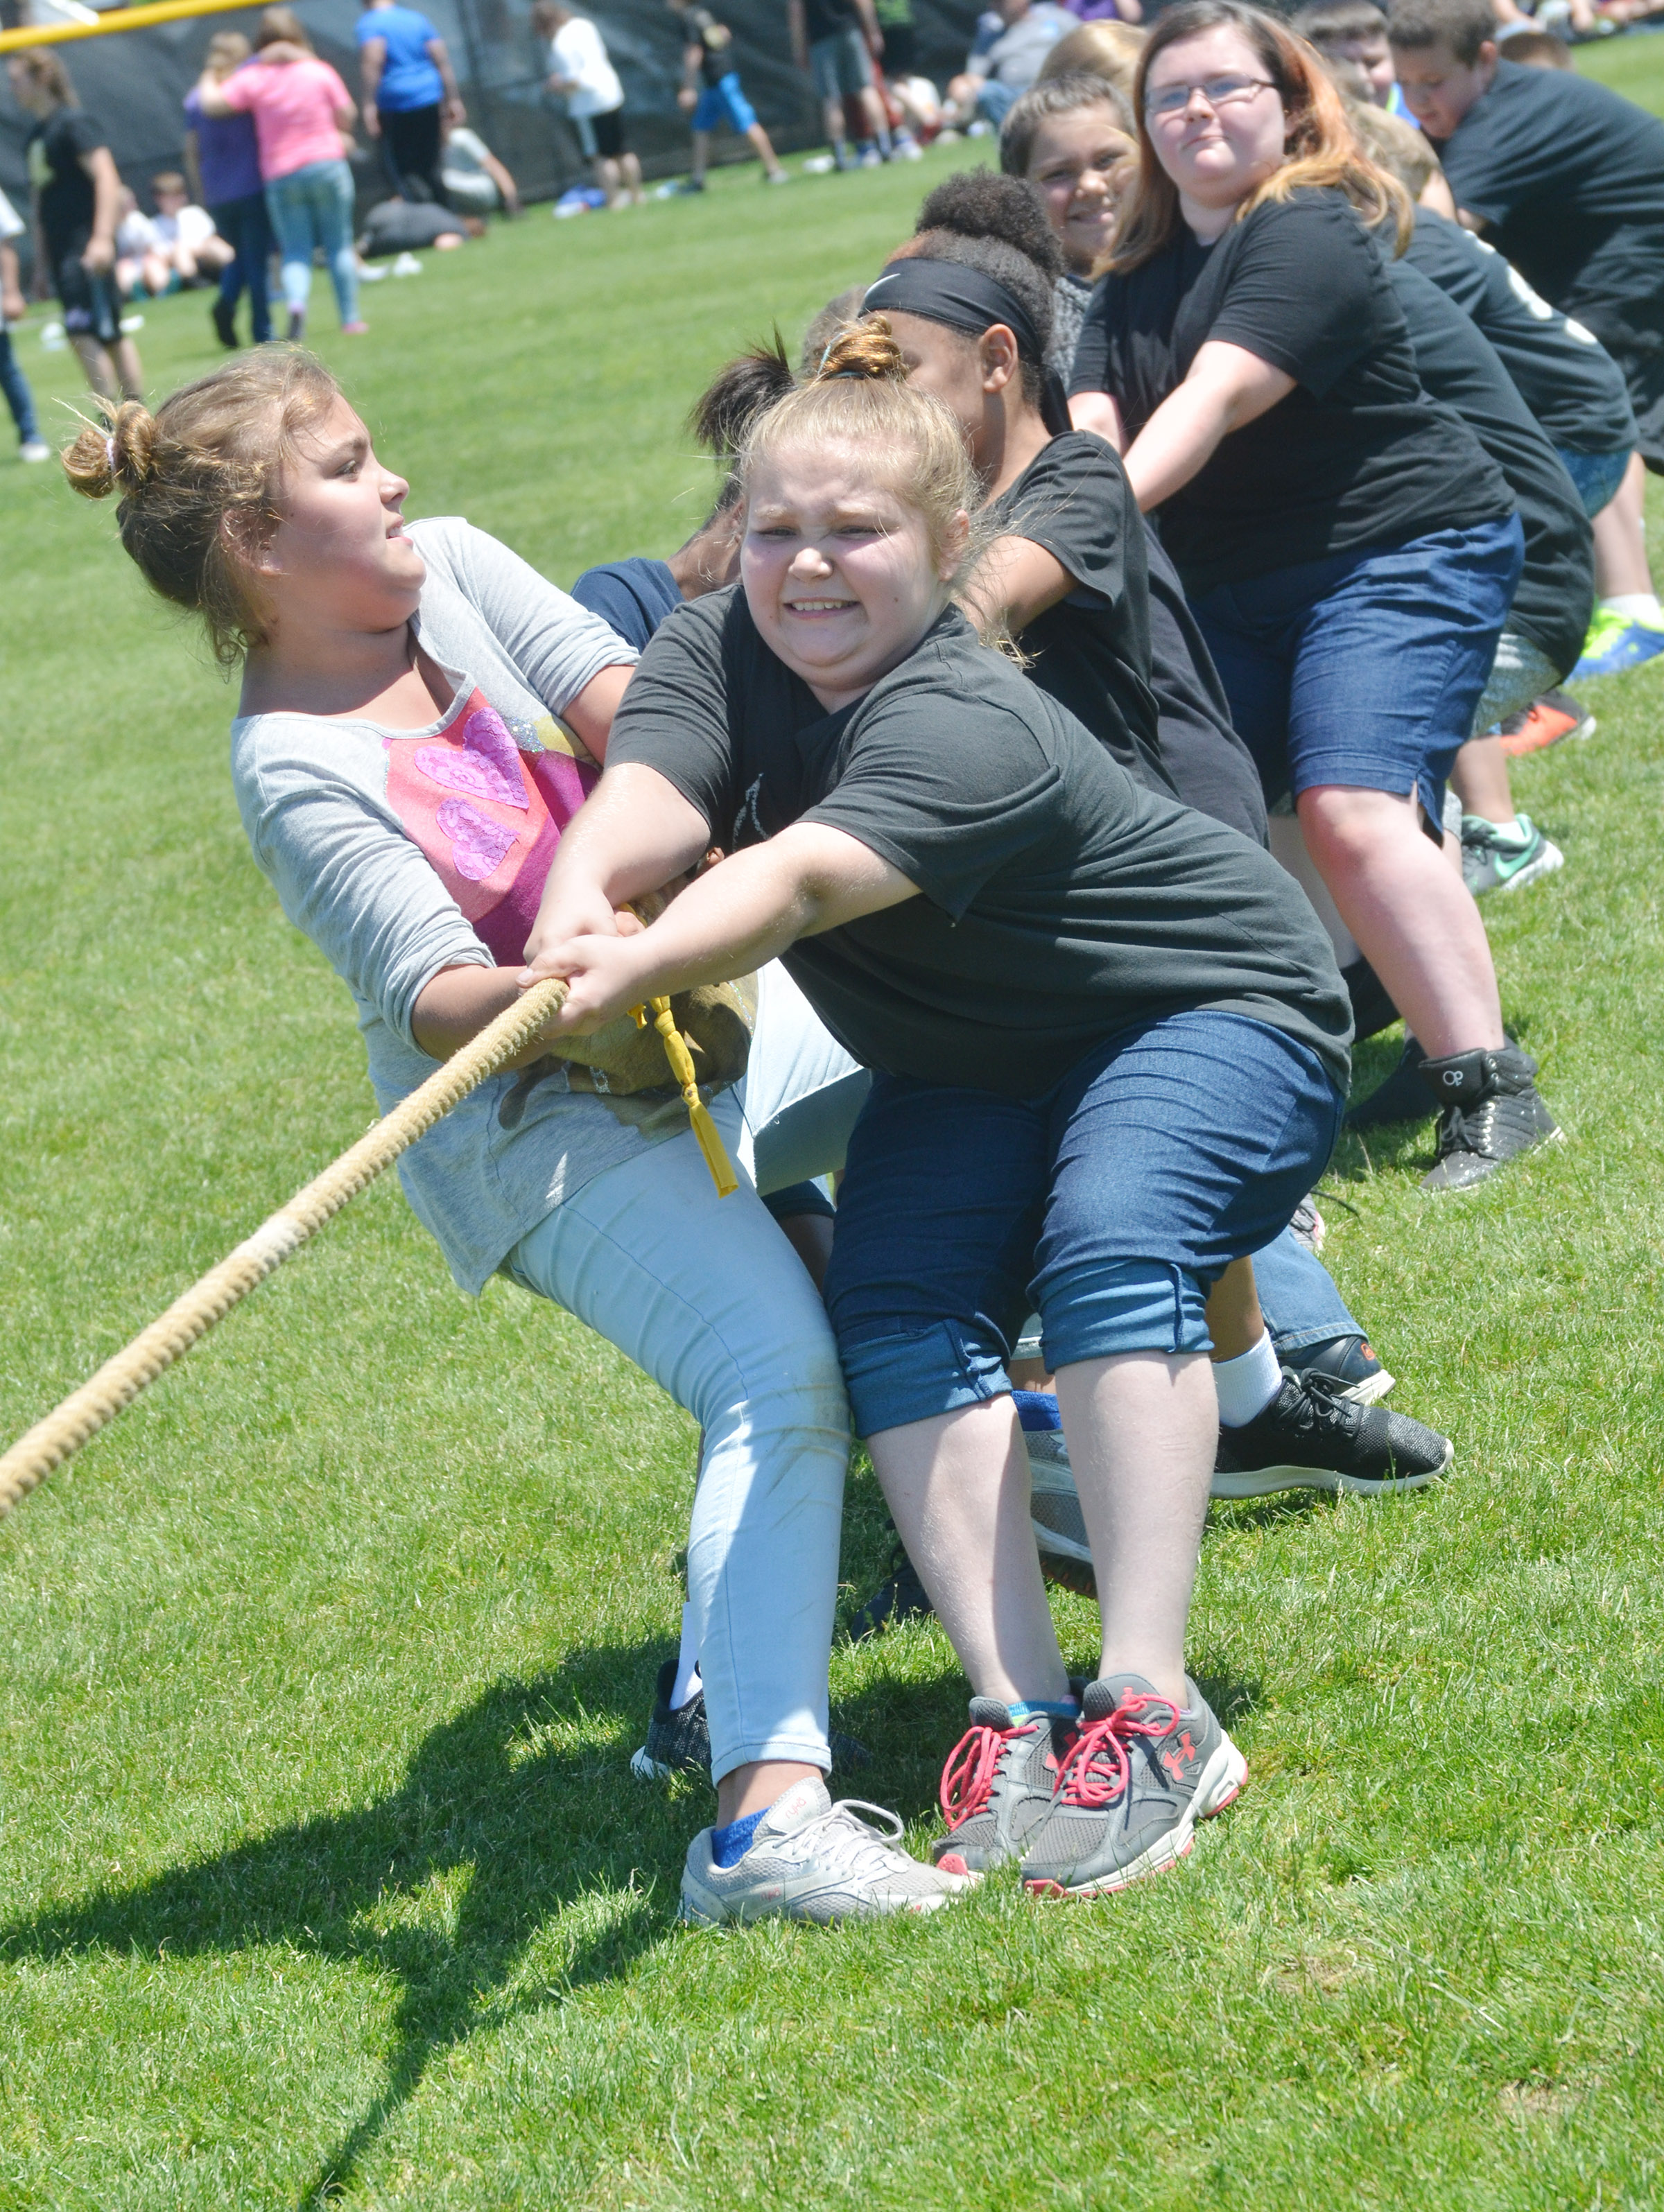 CMS fifth-graders Brooklyn Mays, at left, and Donna Schweickert lead their team in a tug of war battle.